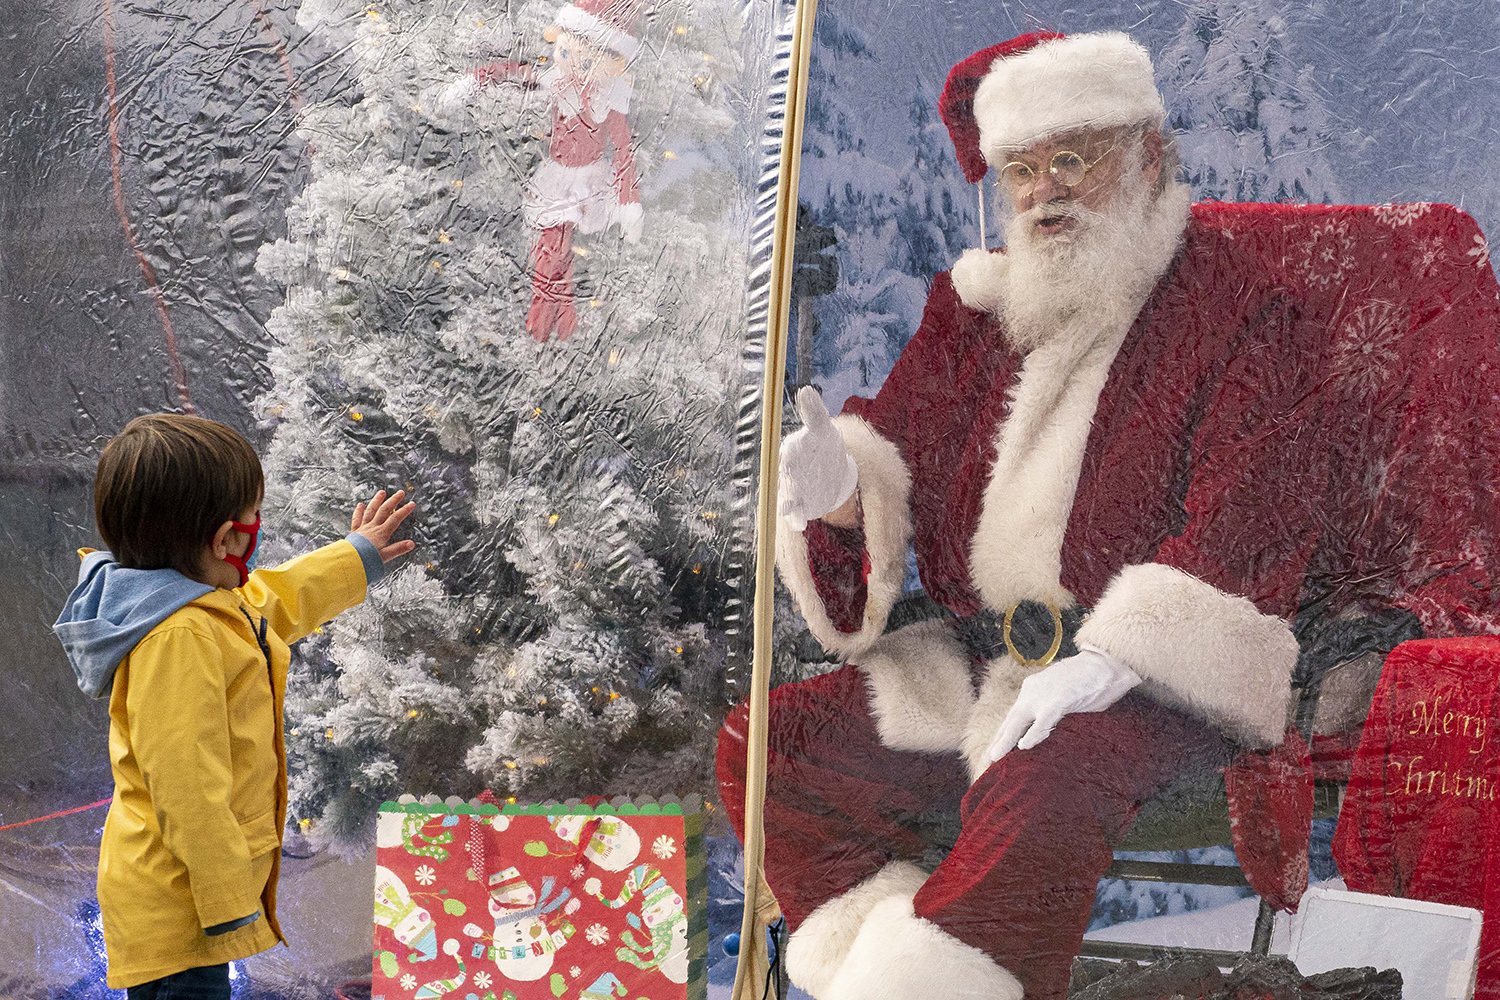 Santa chats with a visiting child in Seattle, Washington, on Dec. 6. David Ryder/Getty Images